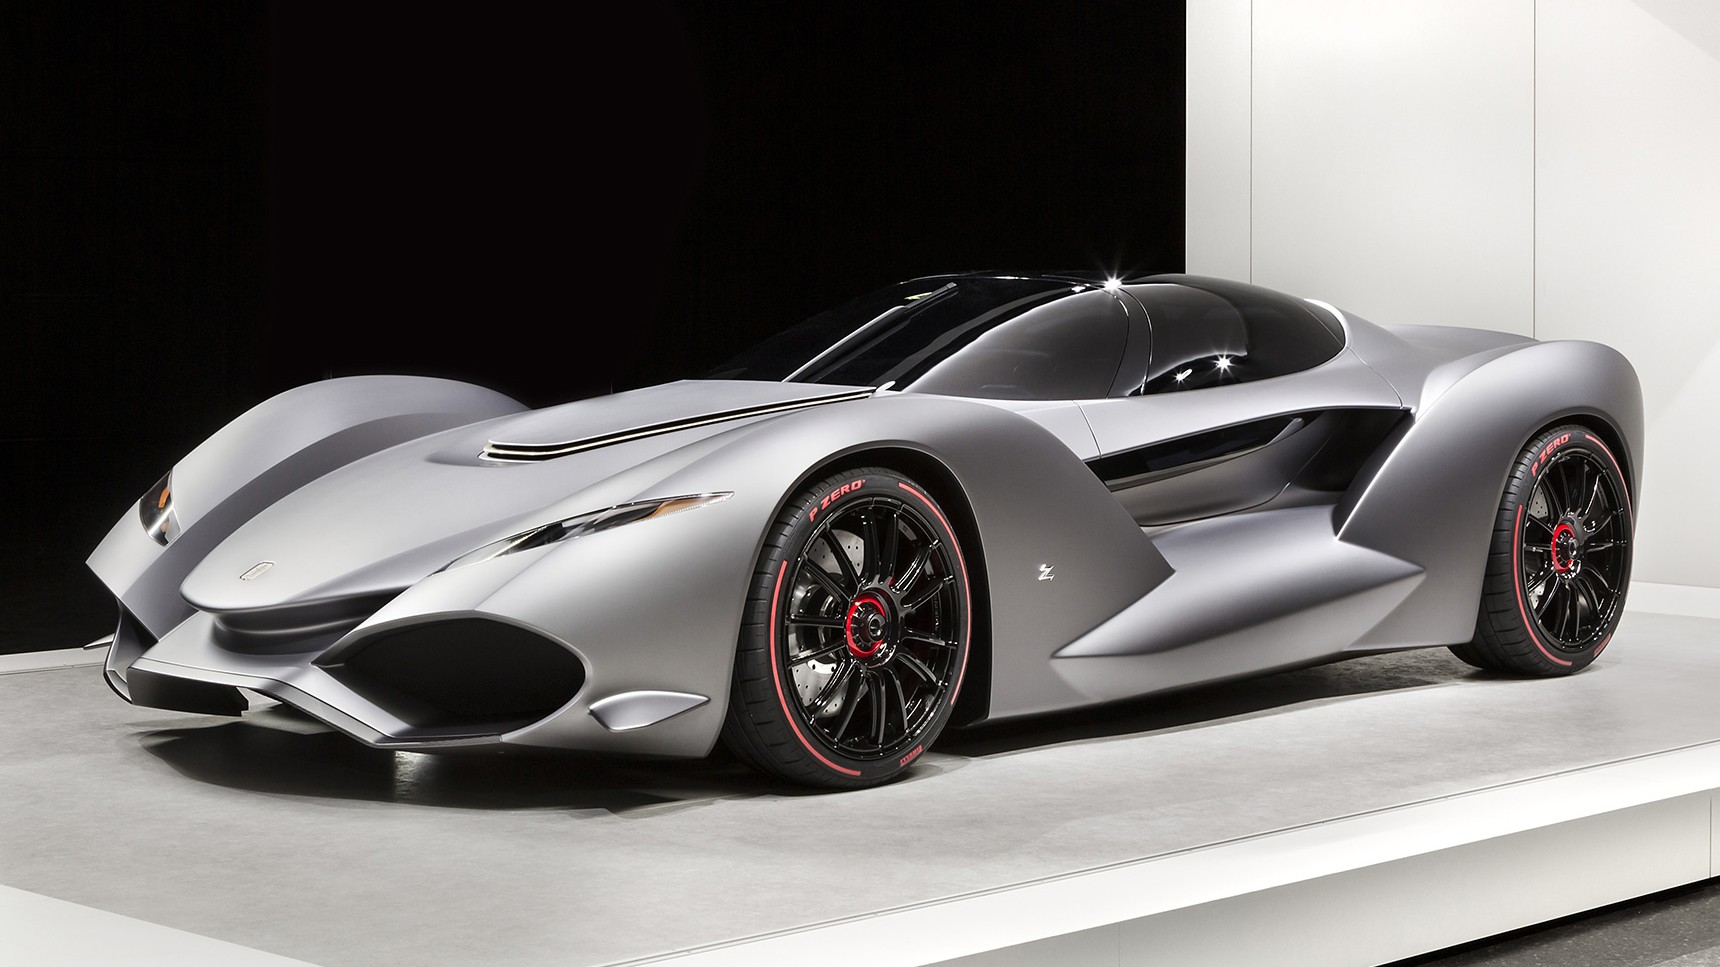 The Zagato Isorivolta Vision Gran Turismo Might Drive Out